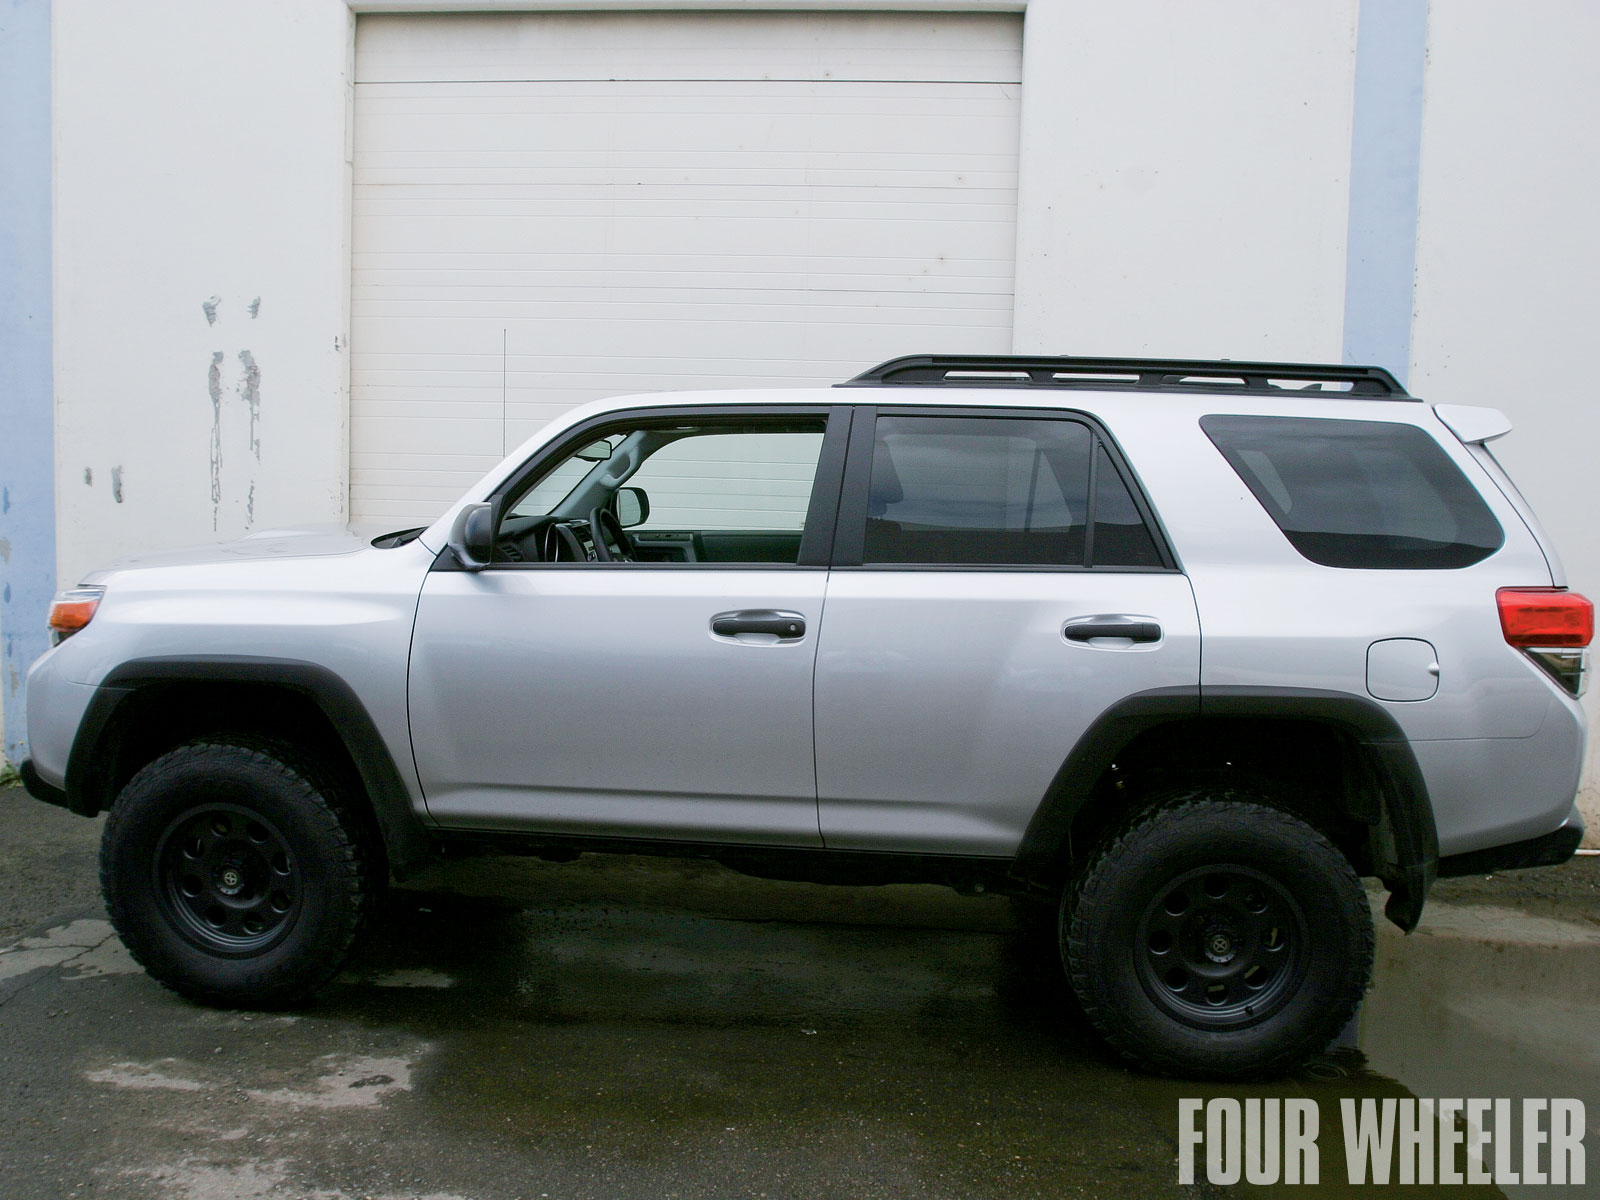 129 1102 01 o+129 1102 project 4runner backcountry part 2+driver side after shot